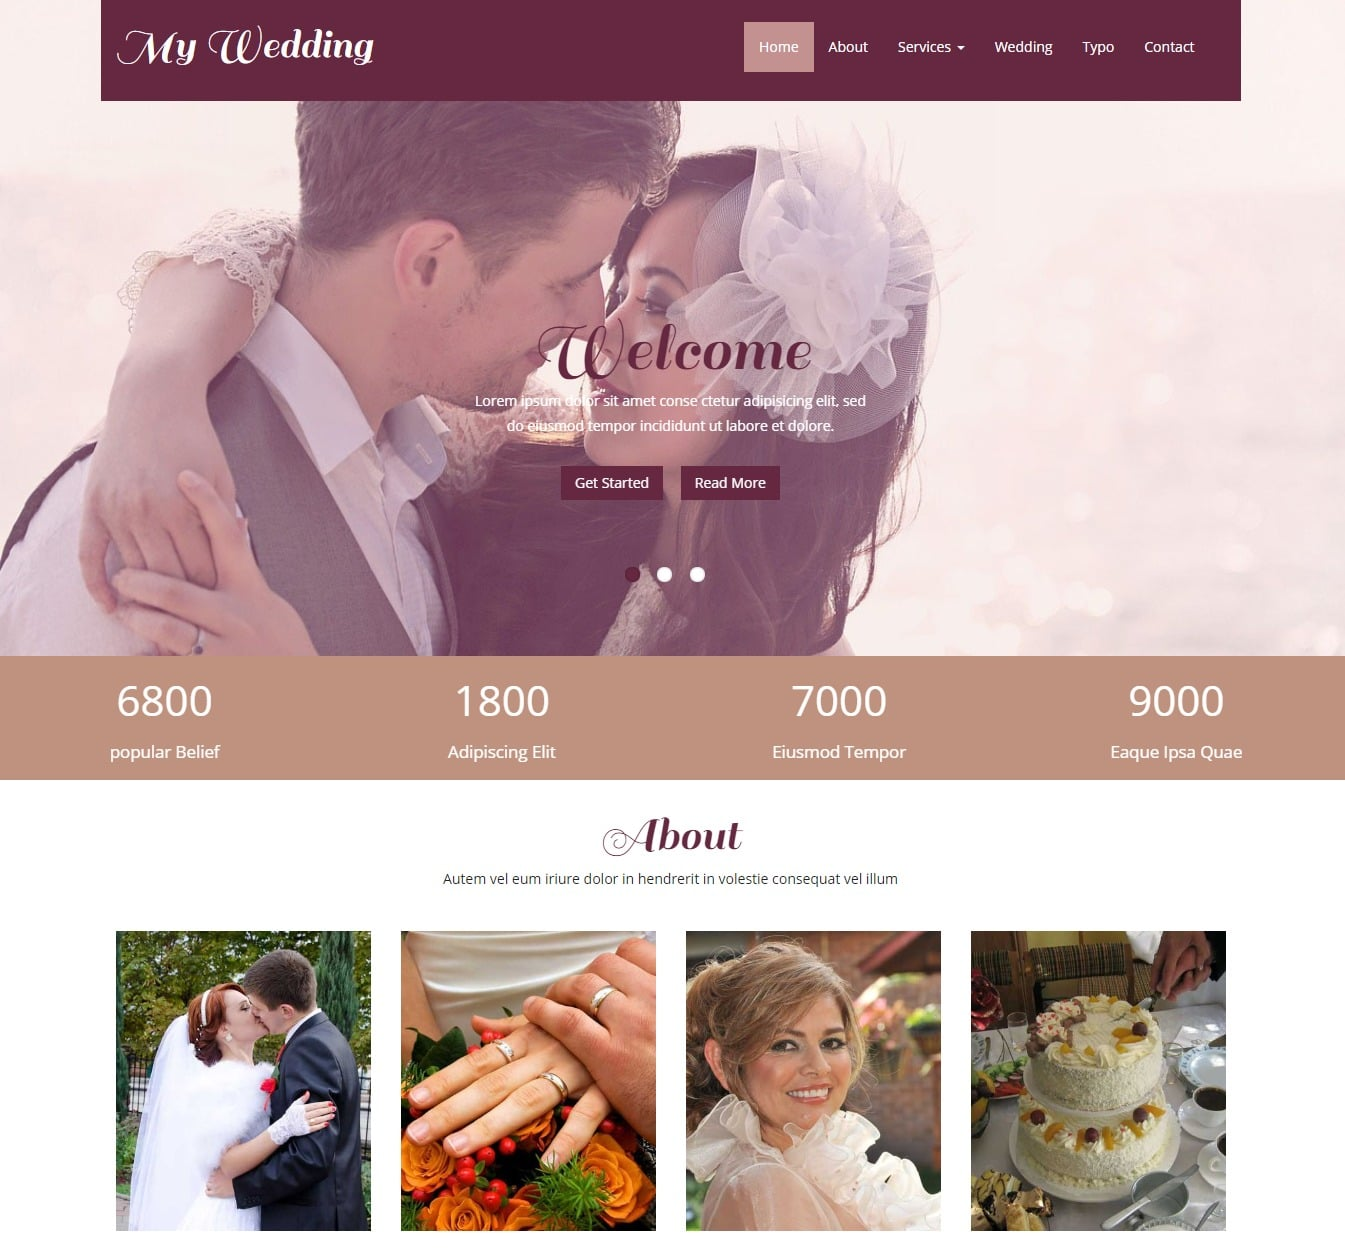 my-wedding-free-wedding-website-template